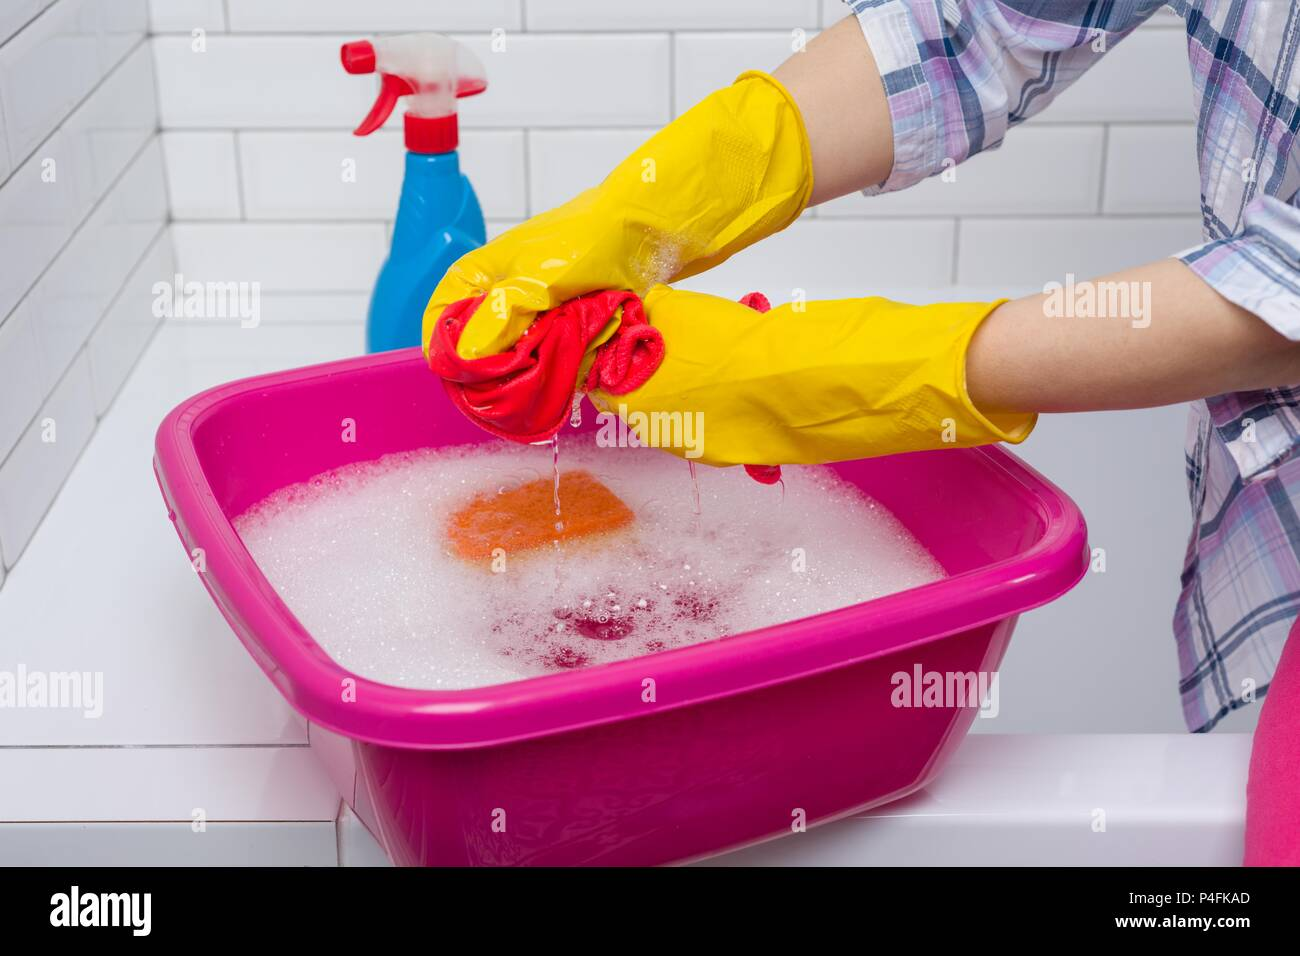 Housework and domestic lifestyle. Woman is cleaning in the bathroom. - Stock Image